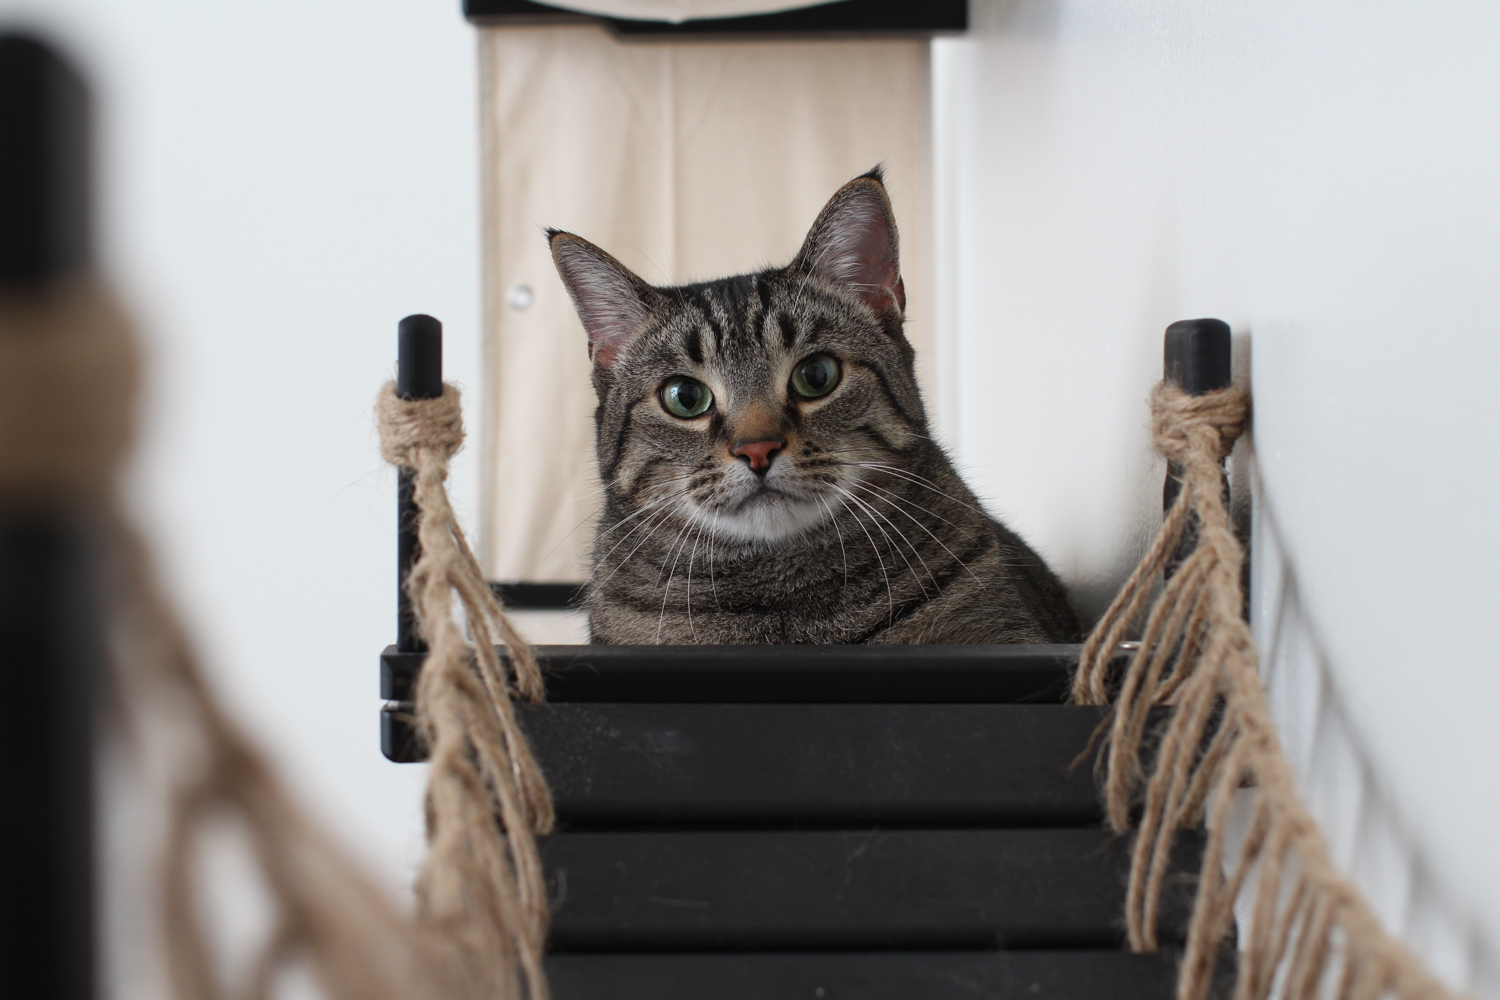 This photo displays a close up of a cat near the Cat Bridge of the Canyon Cat Condo.